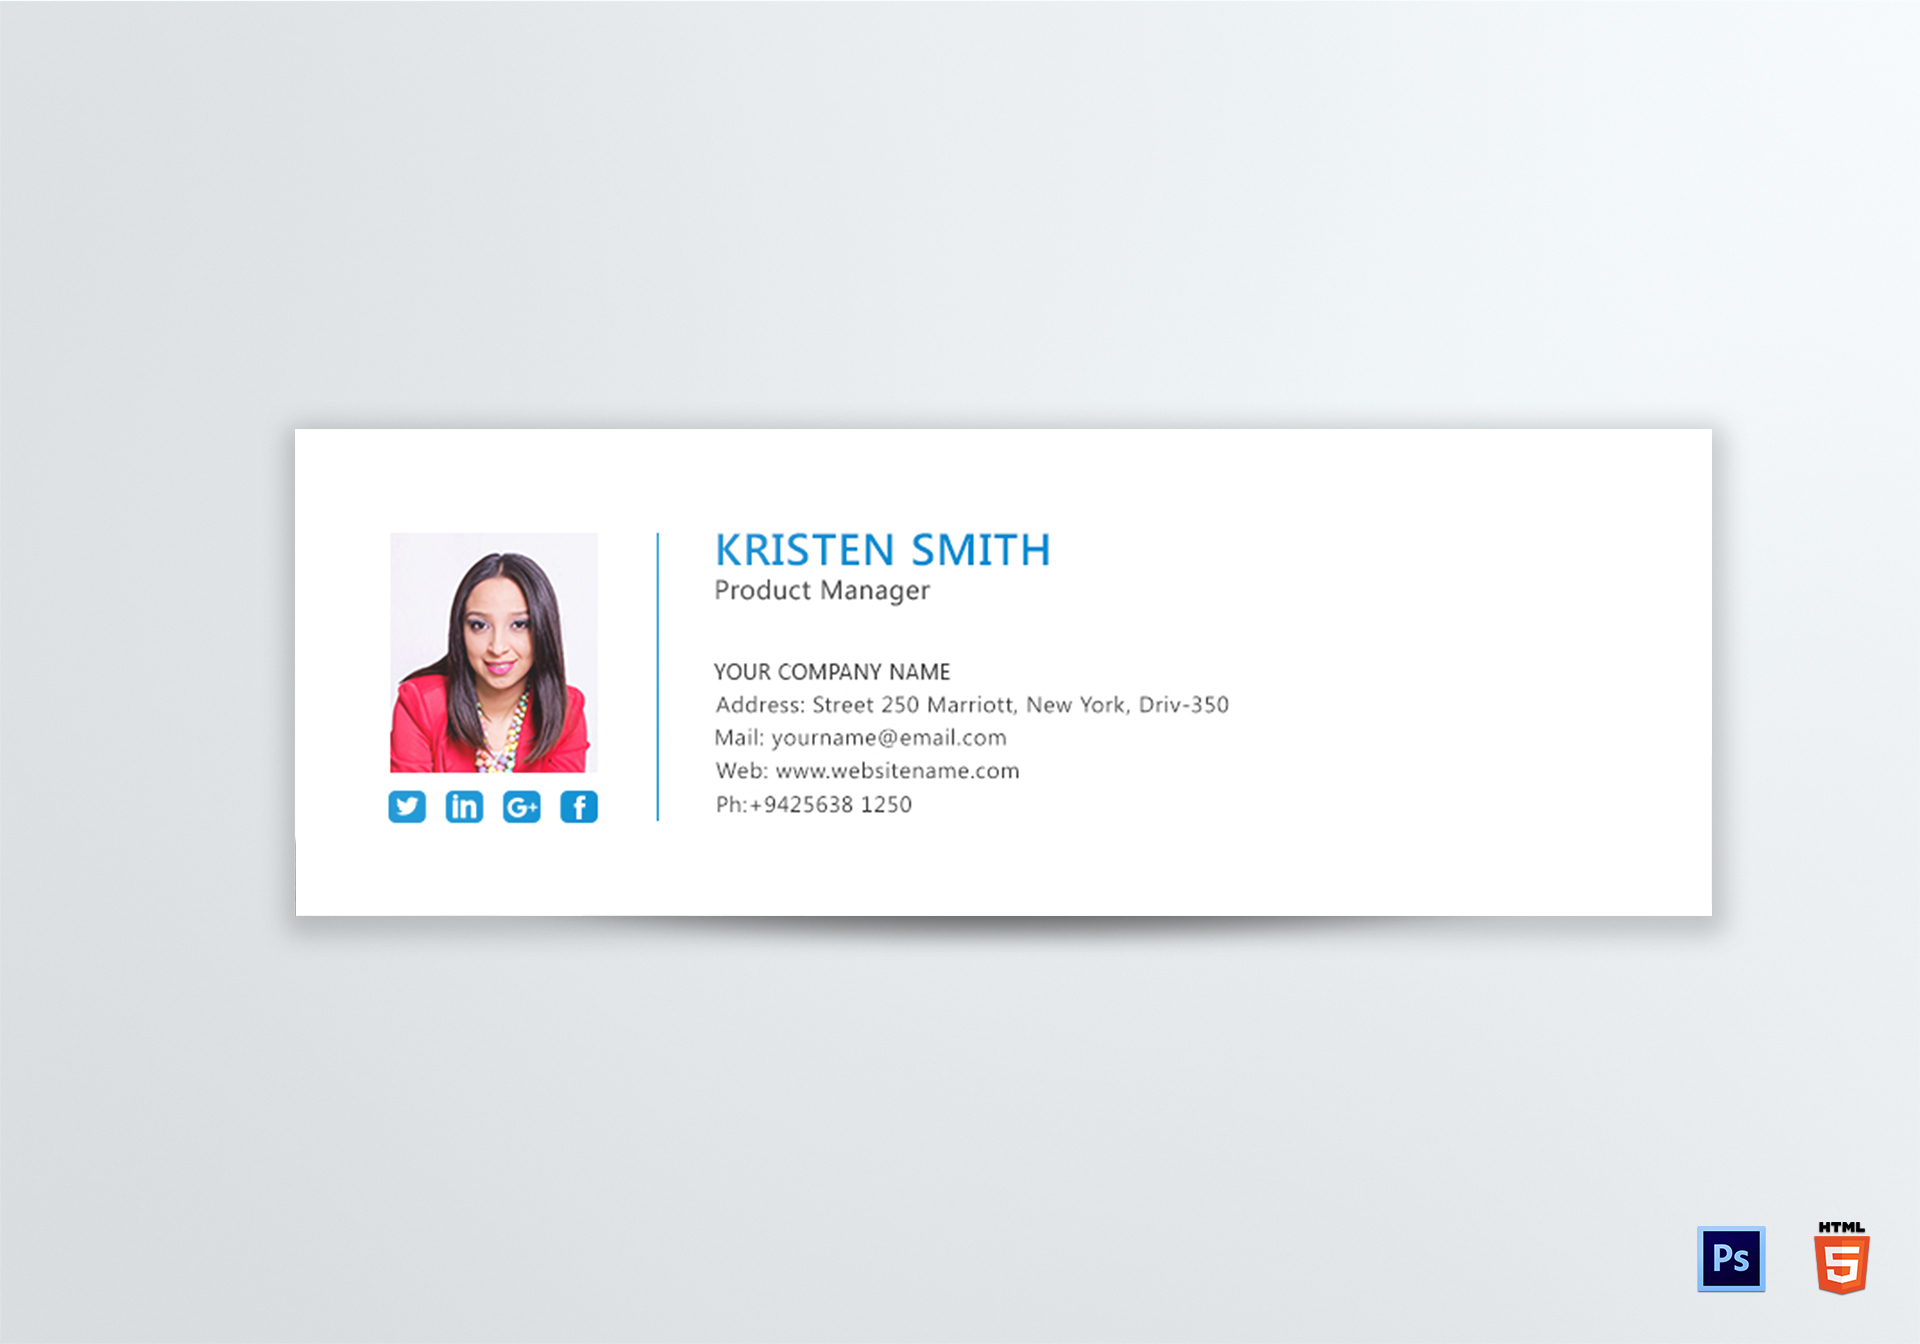 Professional Product Manager Email Signature Design Template In Psd